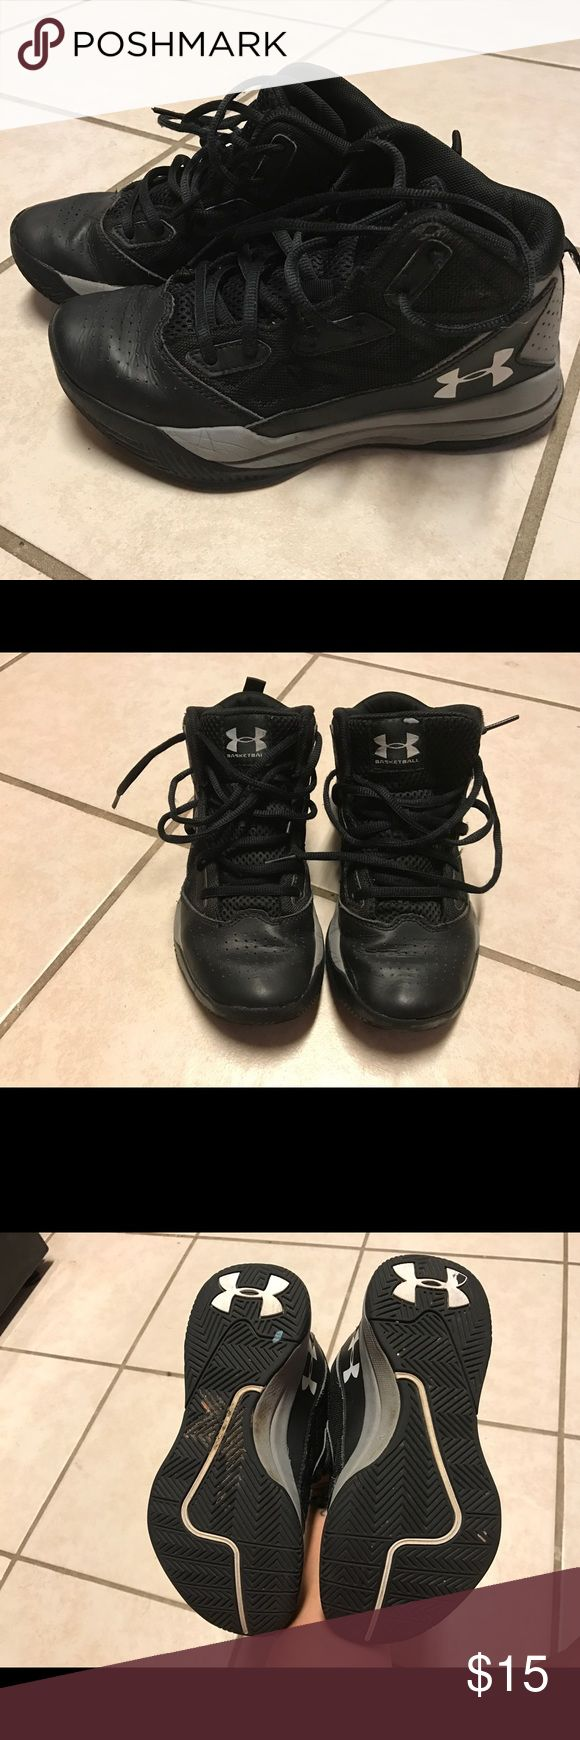 Girls' Under Armour High Top Sneakers Good used condition. Black and gray. Small flaw shown in last pic. Under Armour Shoes Sneakers